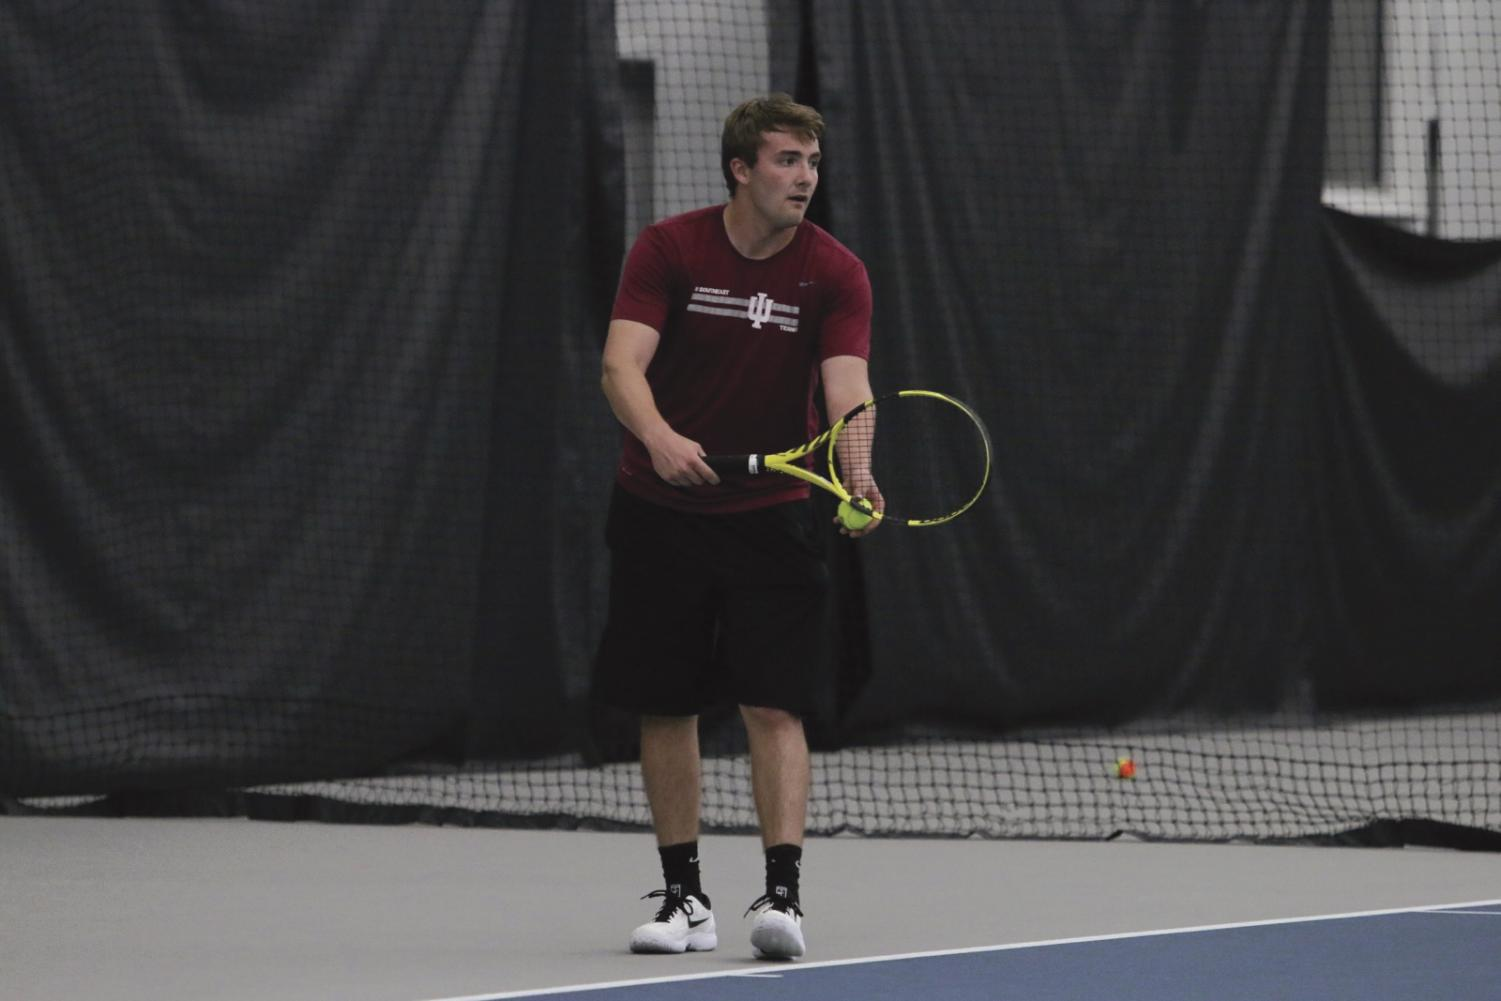 Brock Winchell prepares to serve during a match against Asbury University on April 11, 2019.